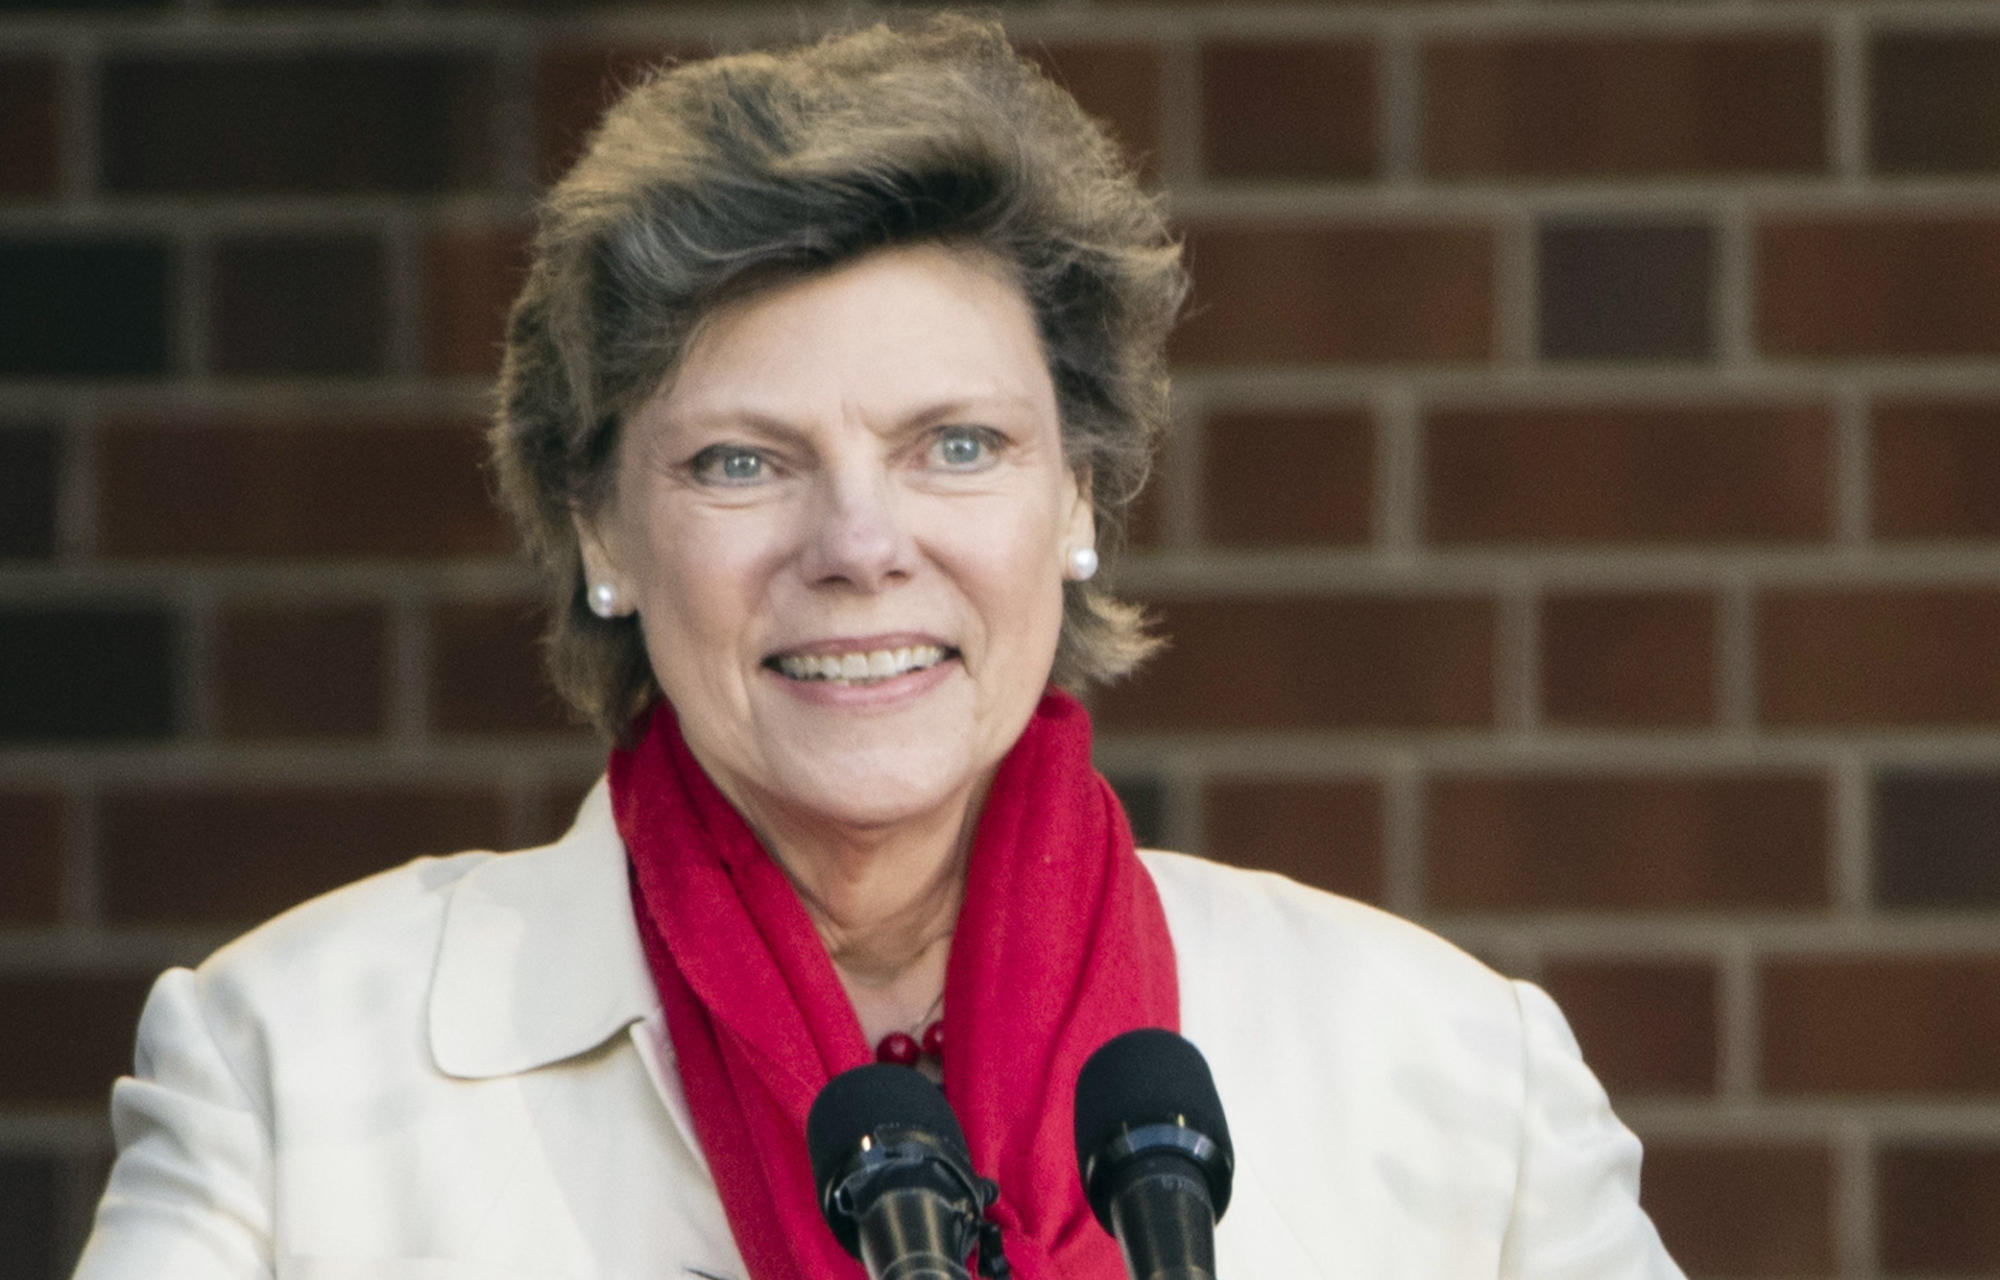 WATCH: Friends, Family Gather To Remember Cokie Roberts